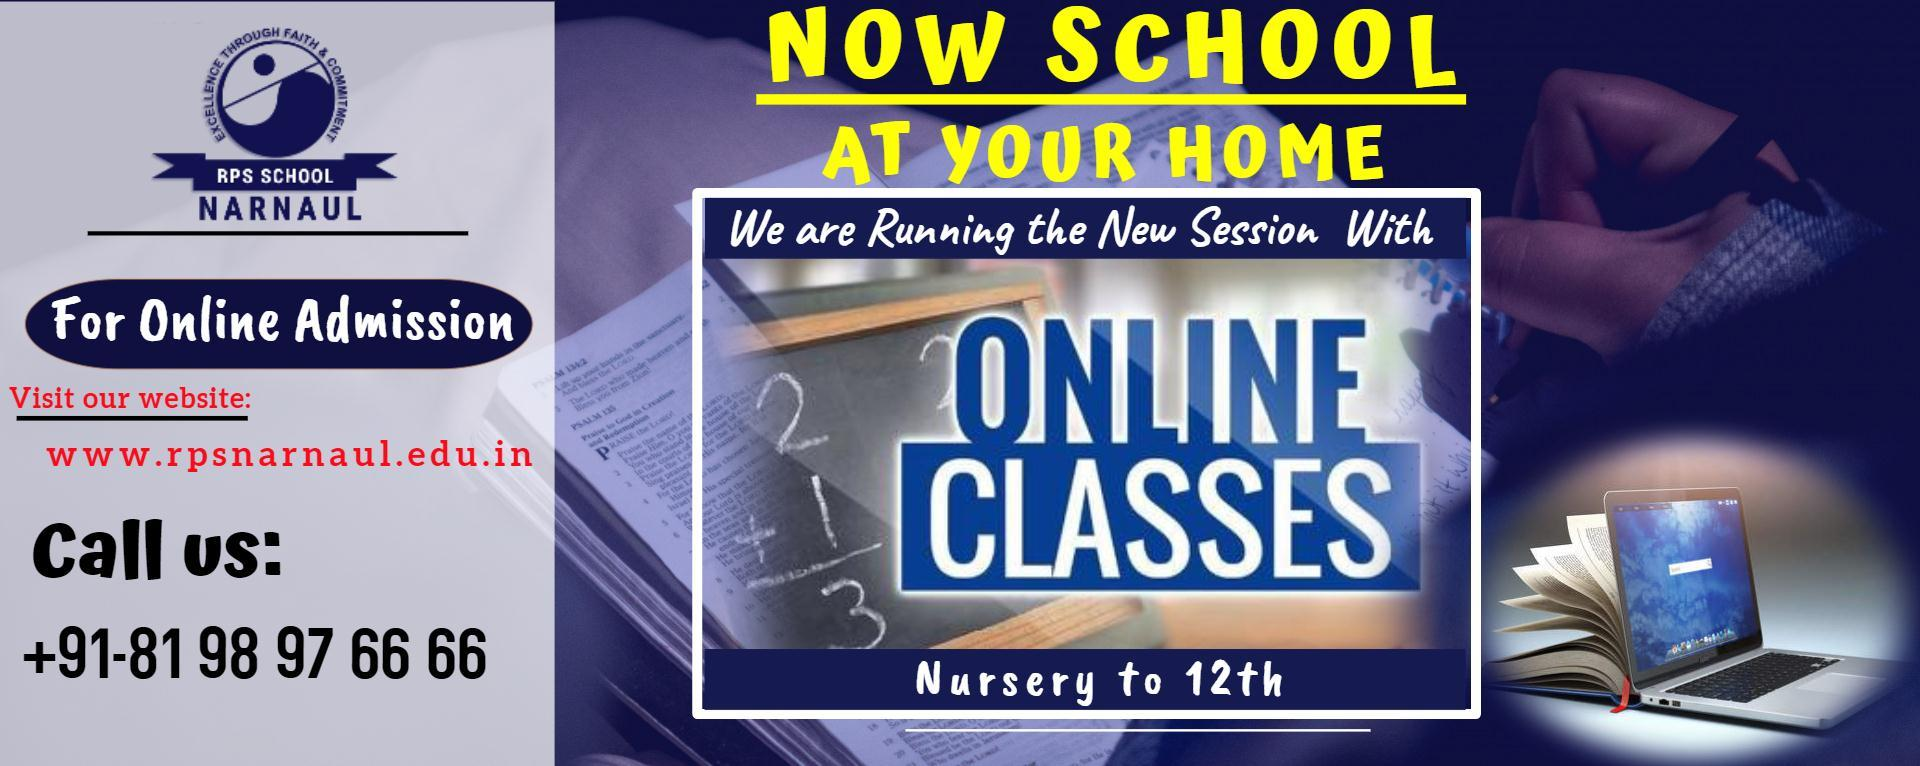 Online Classes Home Page